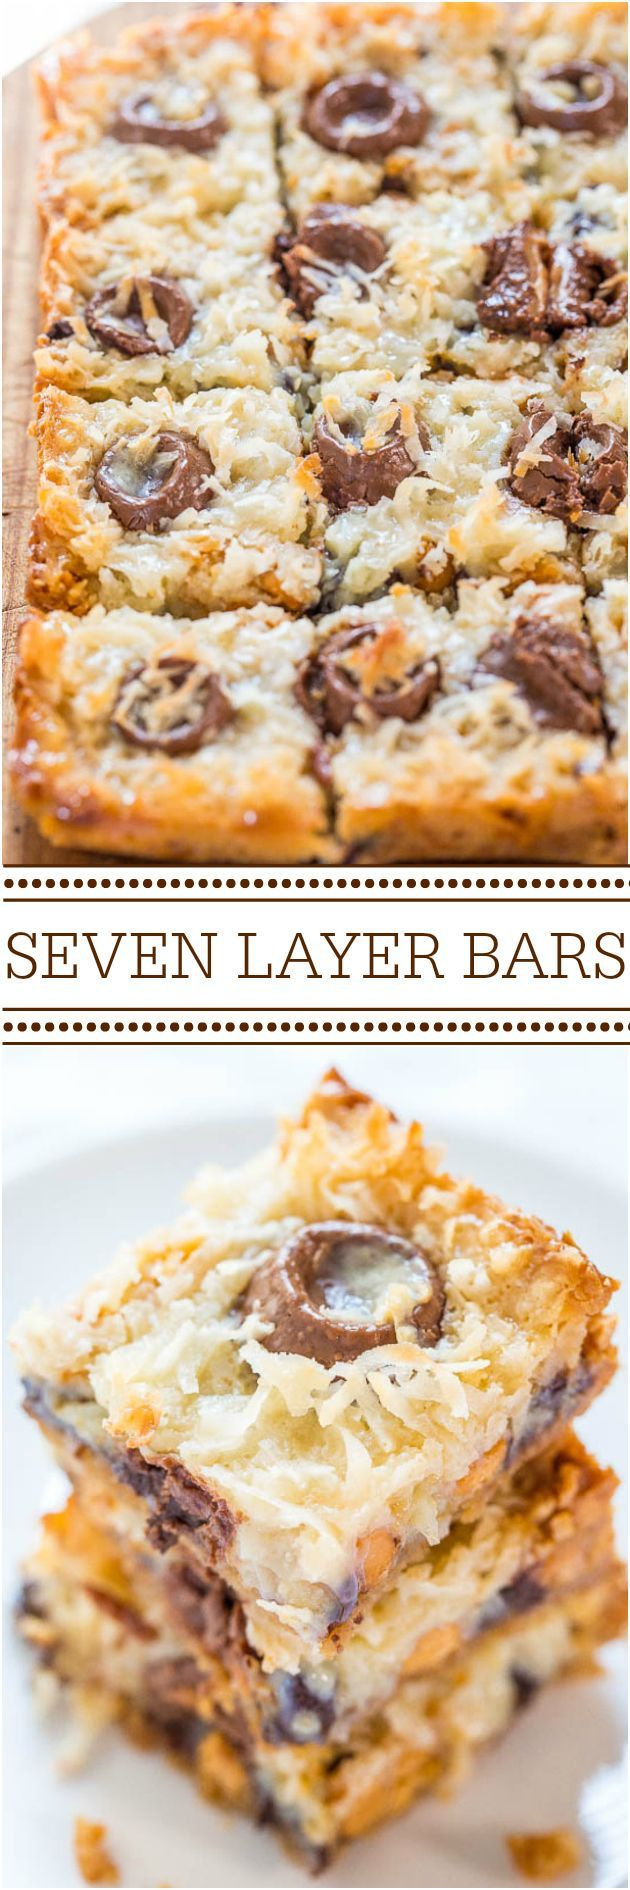 1000+ ideas about Seven Layer Bars on Pinterest   Magic Cookie Bars ...